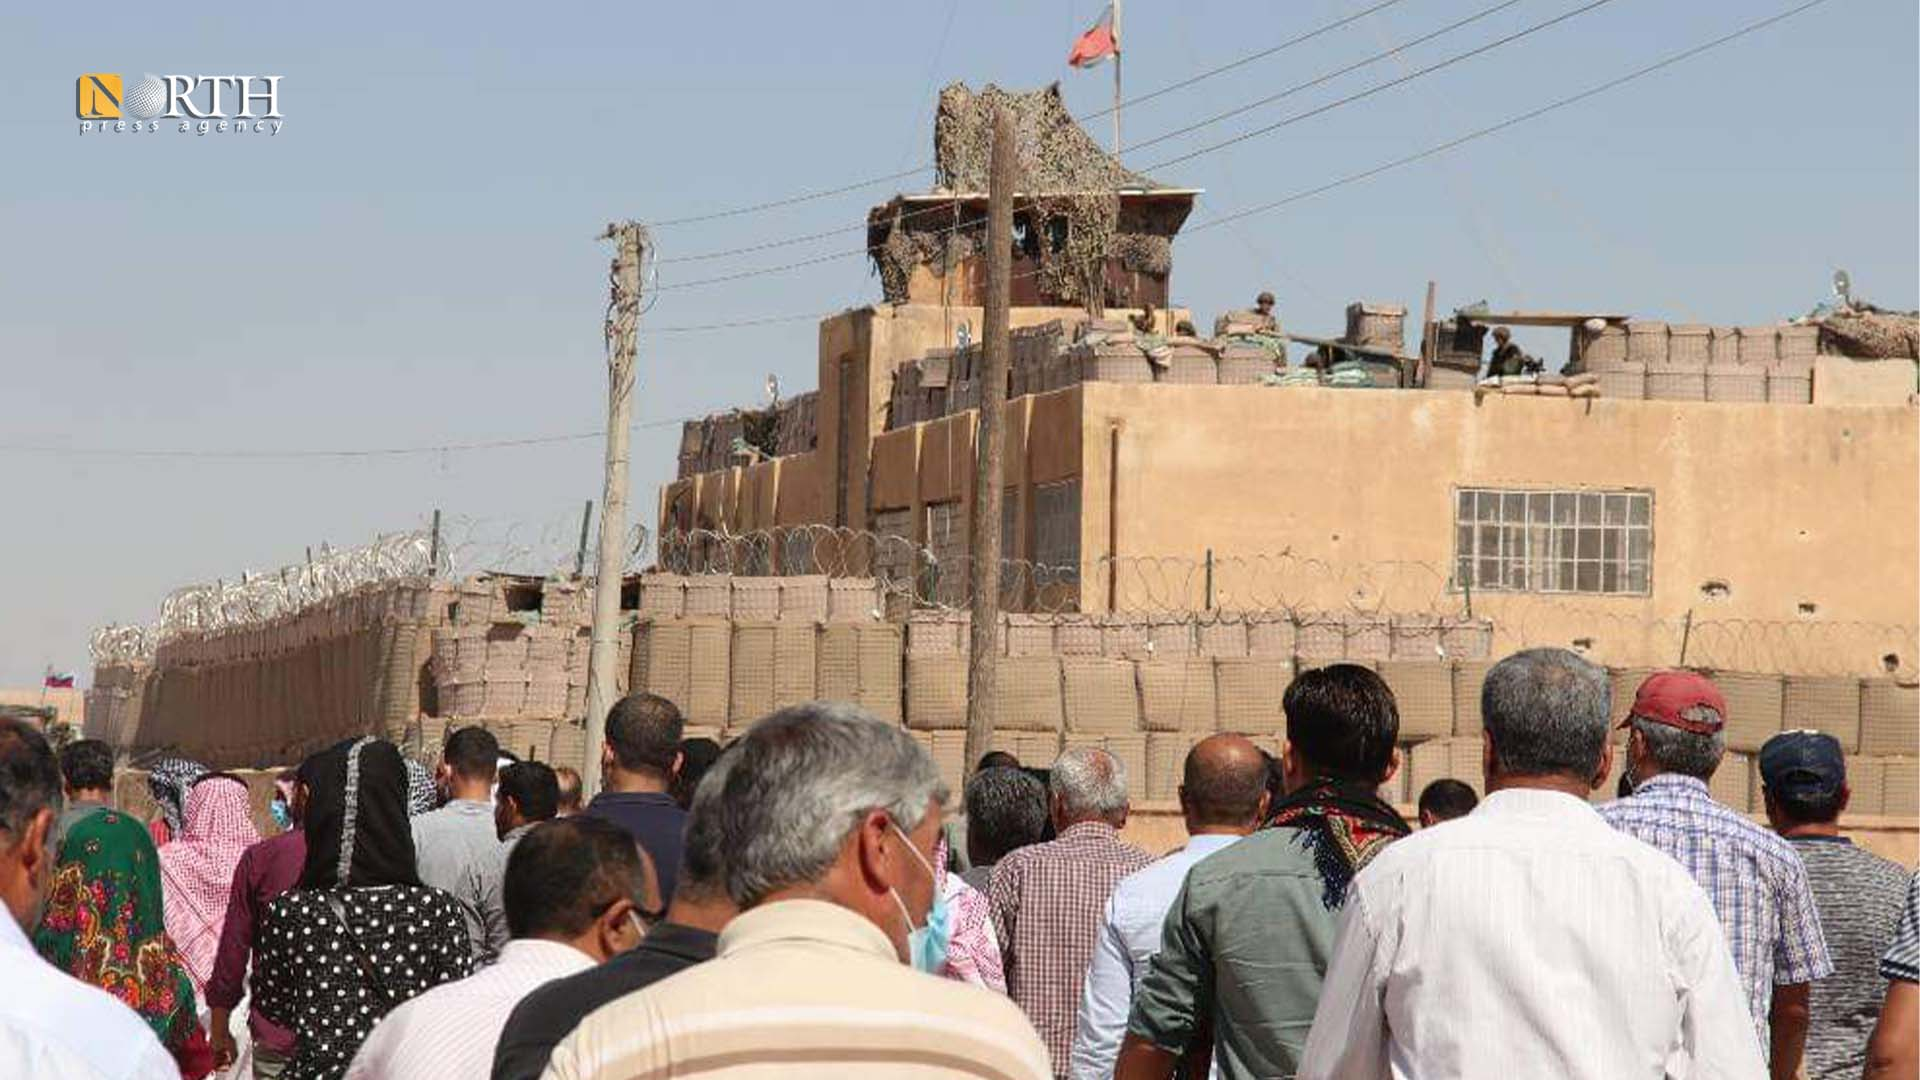 Tel Abyad Council gathers in front of the Russian base in Ain Issa - North Press